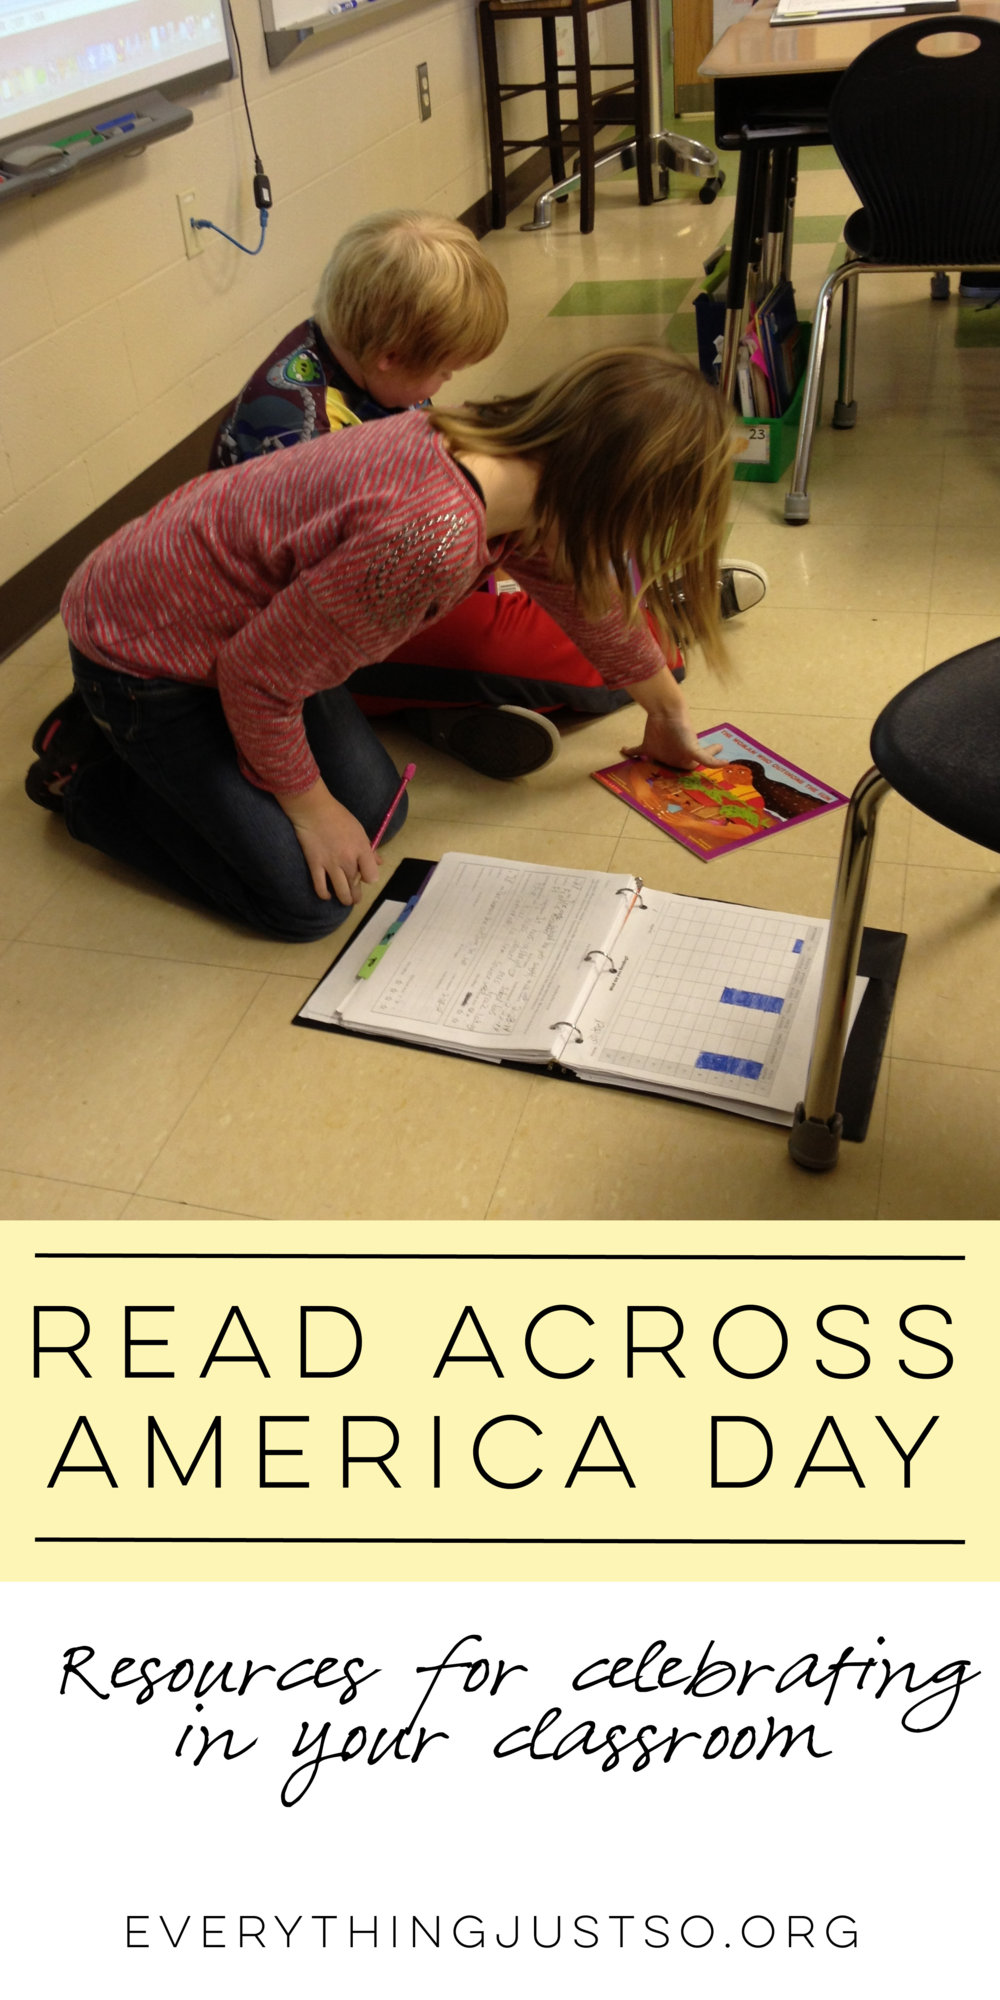 Read Across America Day | everythingjustso.org